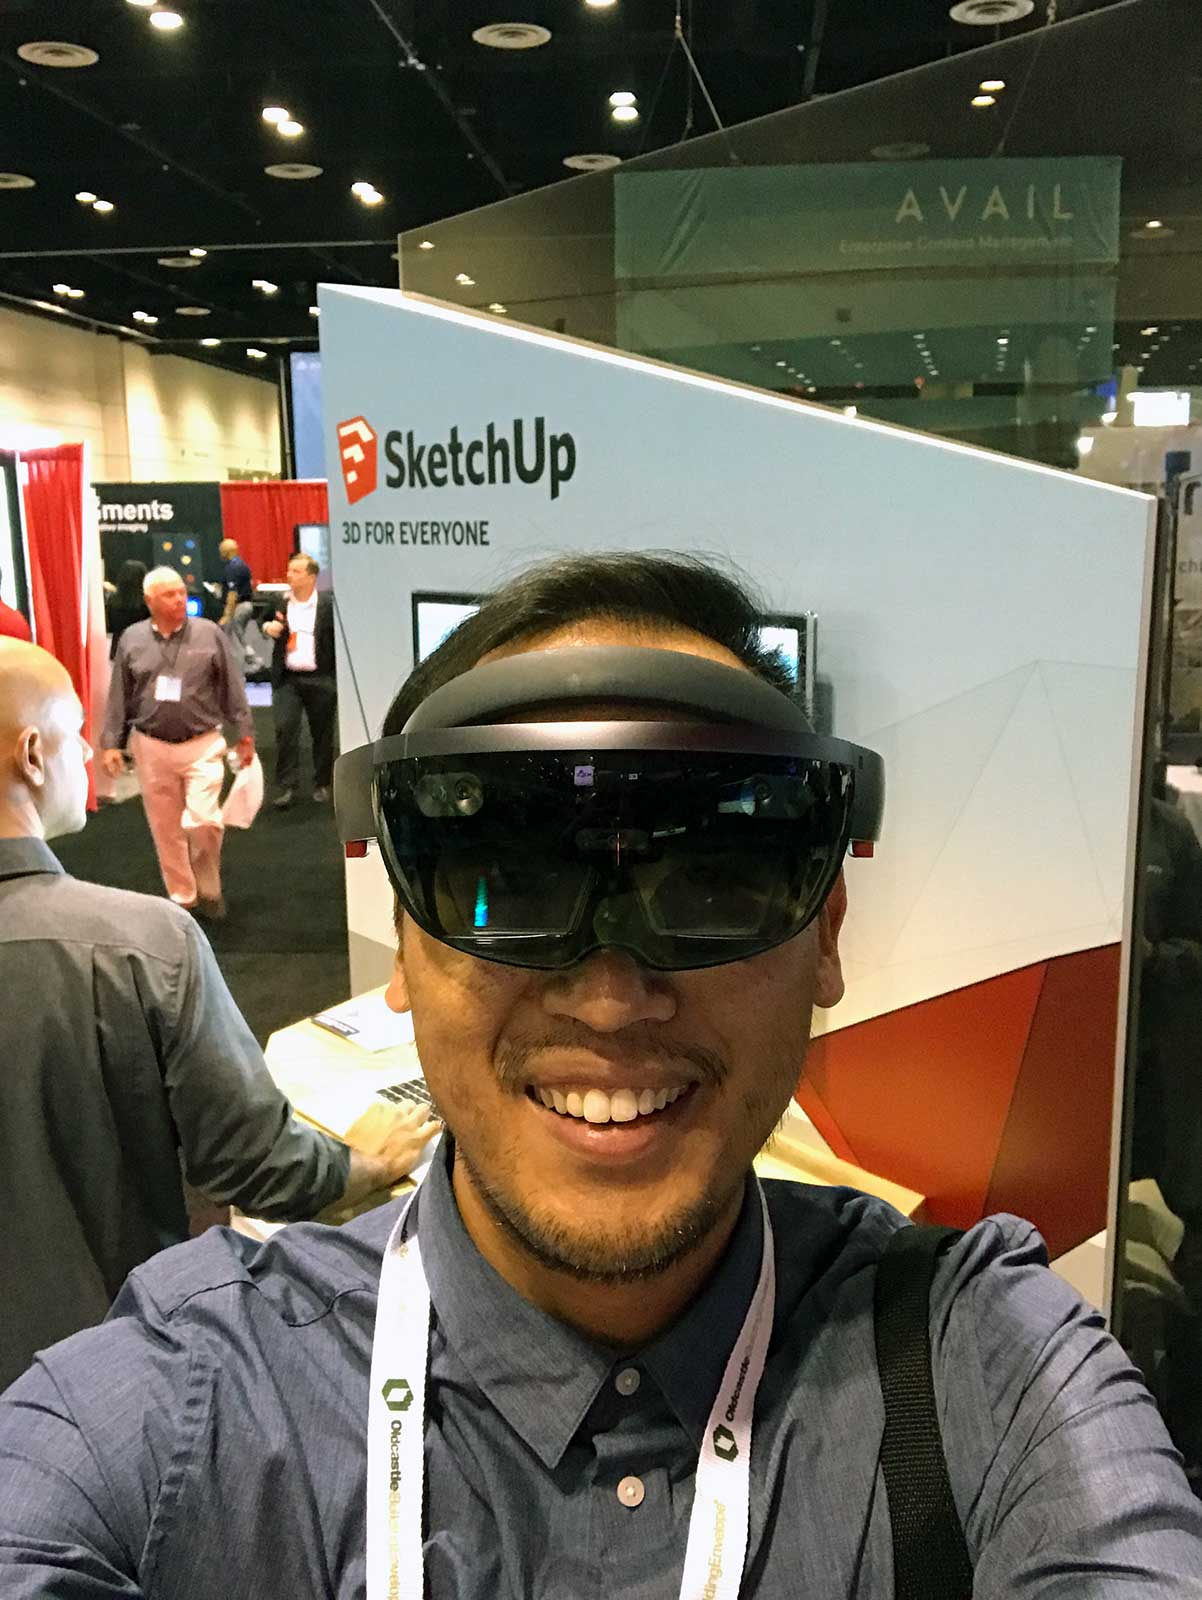 Trying on Sketchup HoloLens